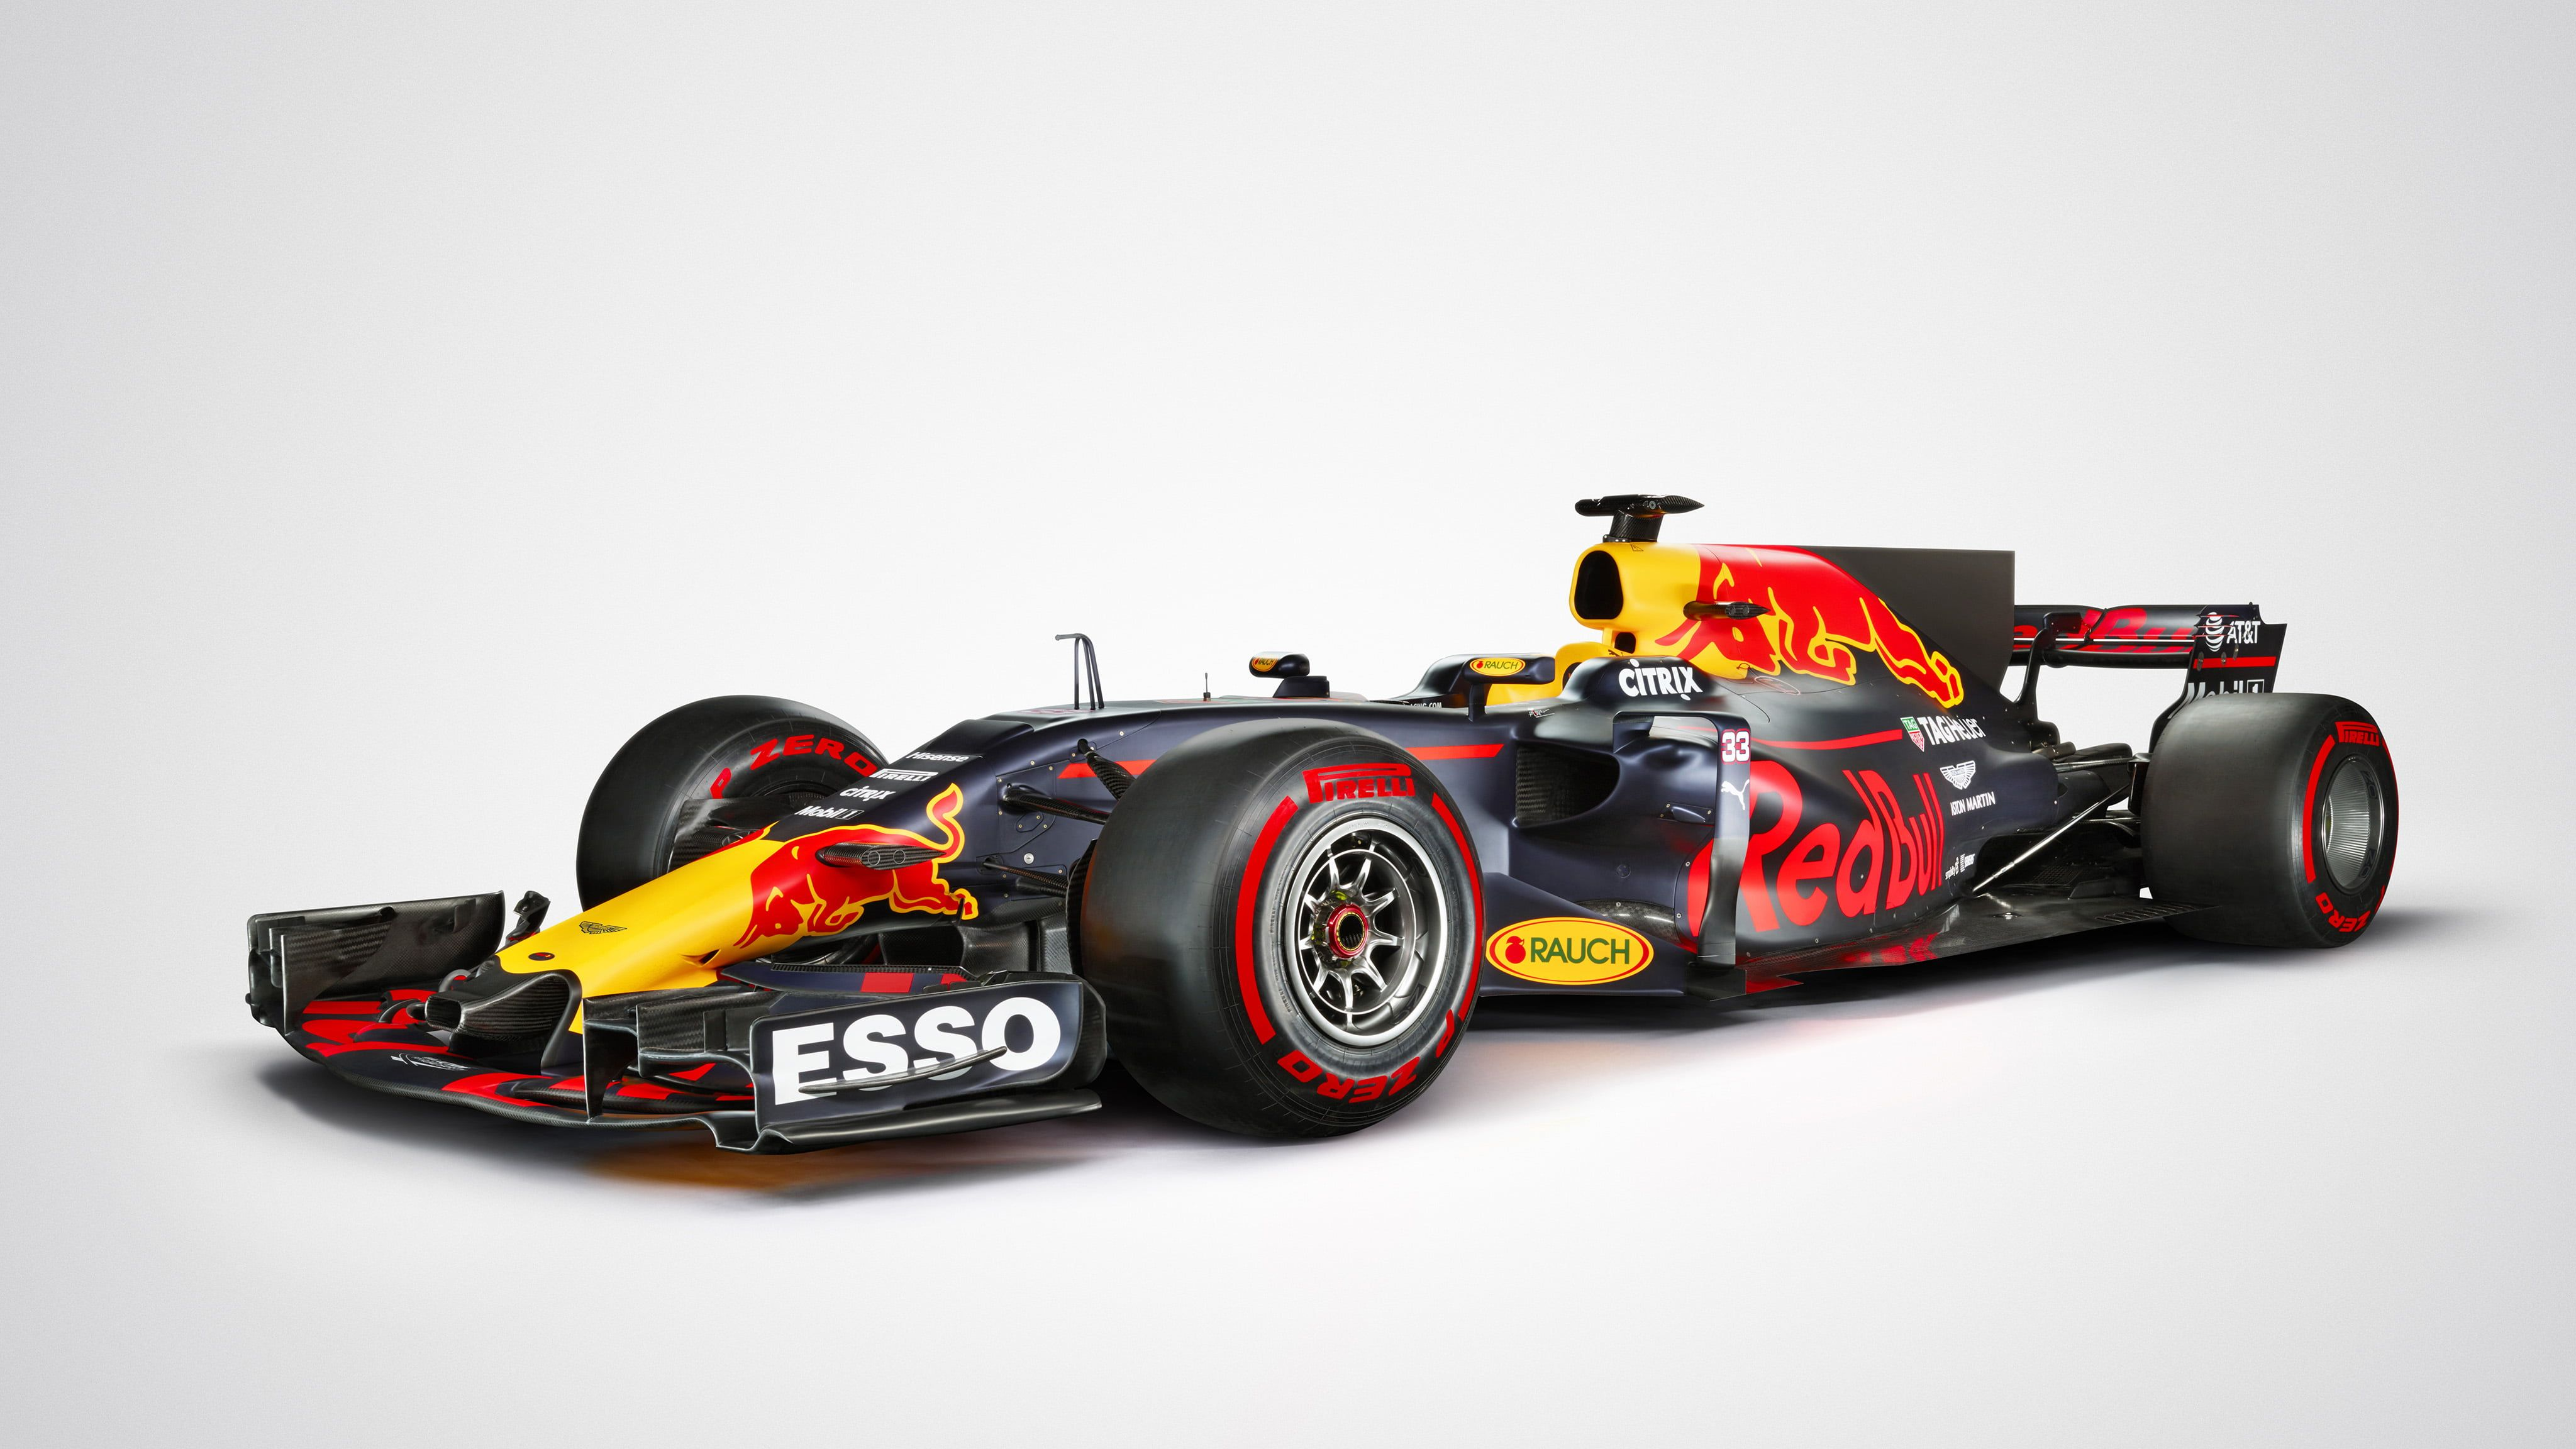 2048x2048 Red Bull Rb12 F1 Ipad Air Hd 4k Wallpapers: Top Free Redbull F1 Backgrounds